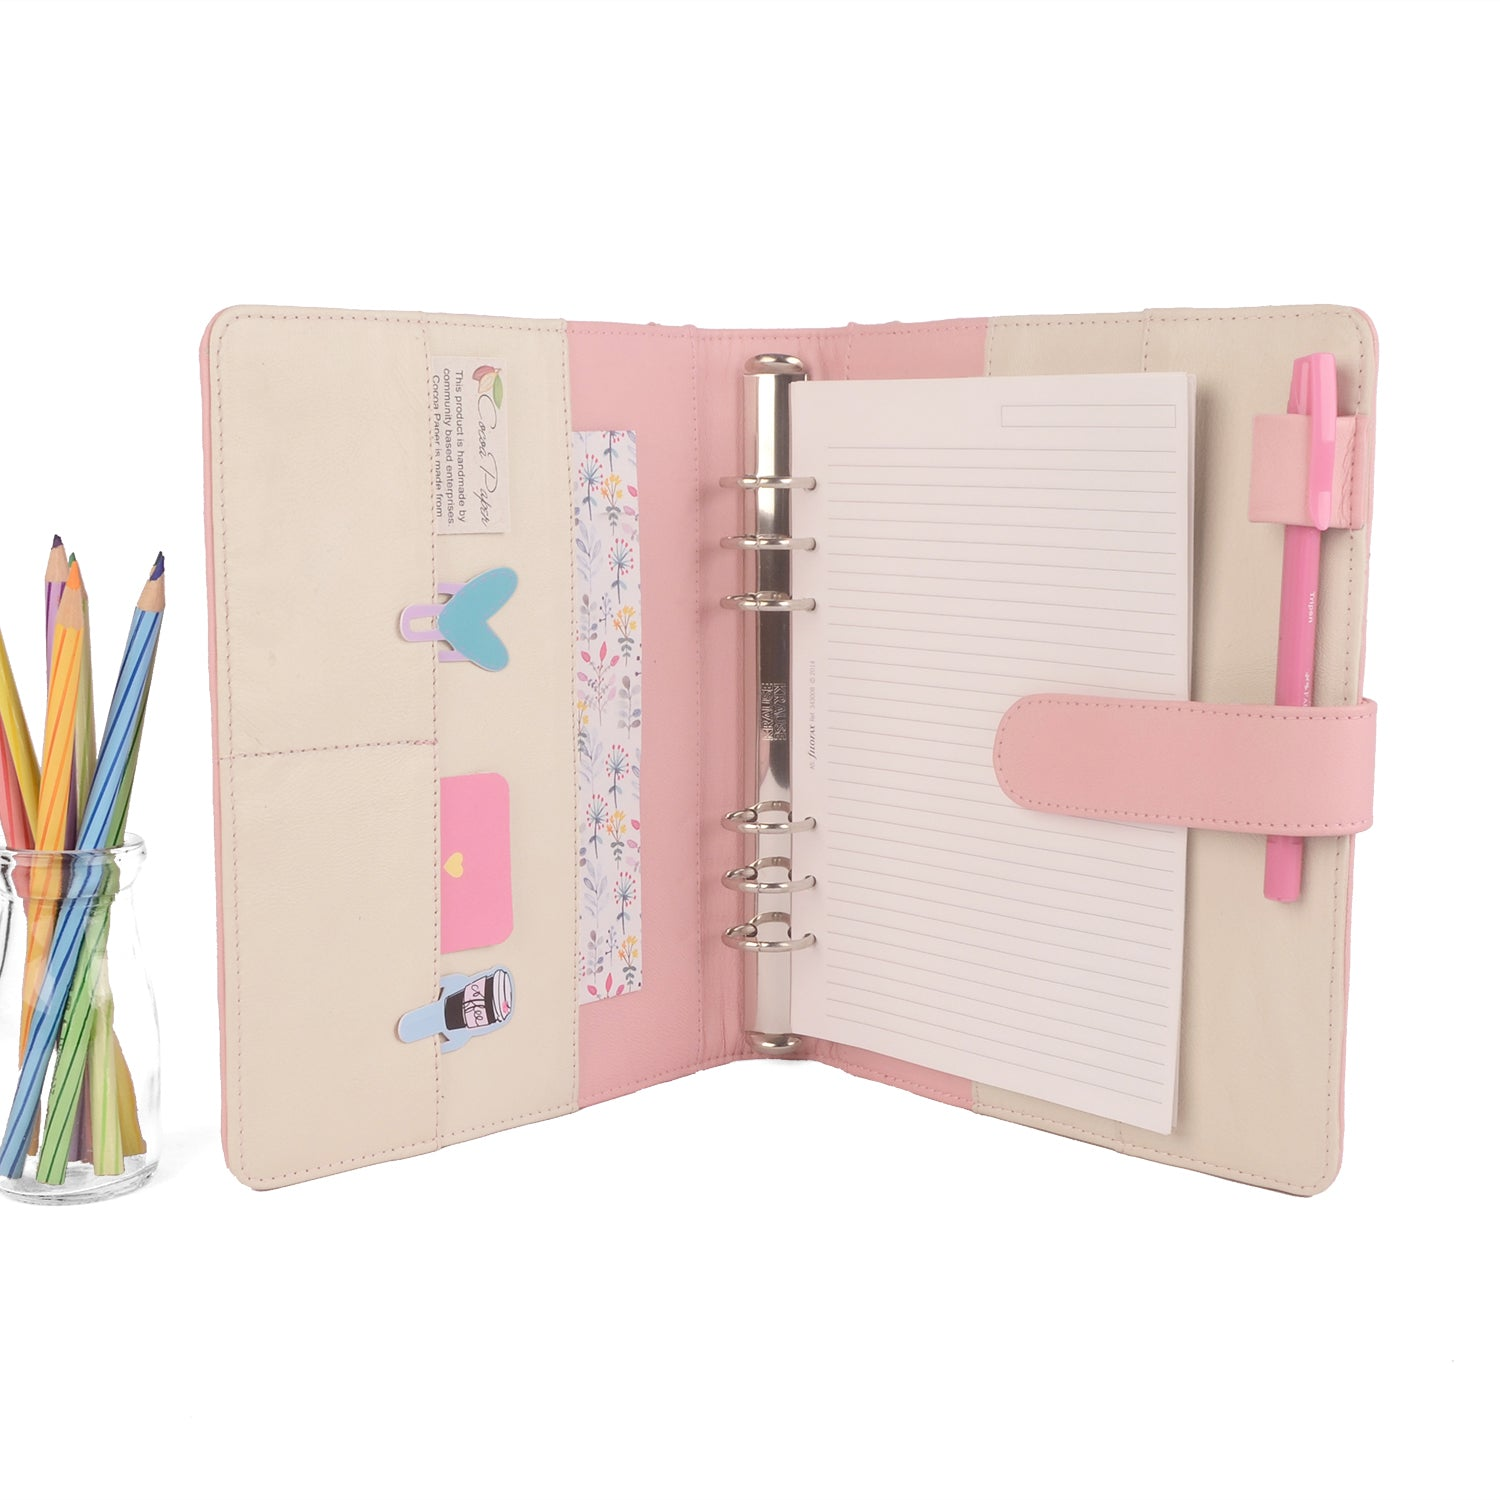 graphic regarding Planner Binders known as Staff- A5 Leather-based Ring Binder Planner